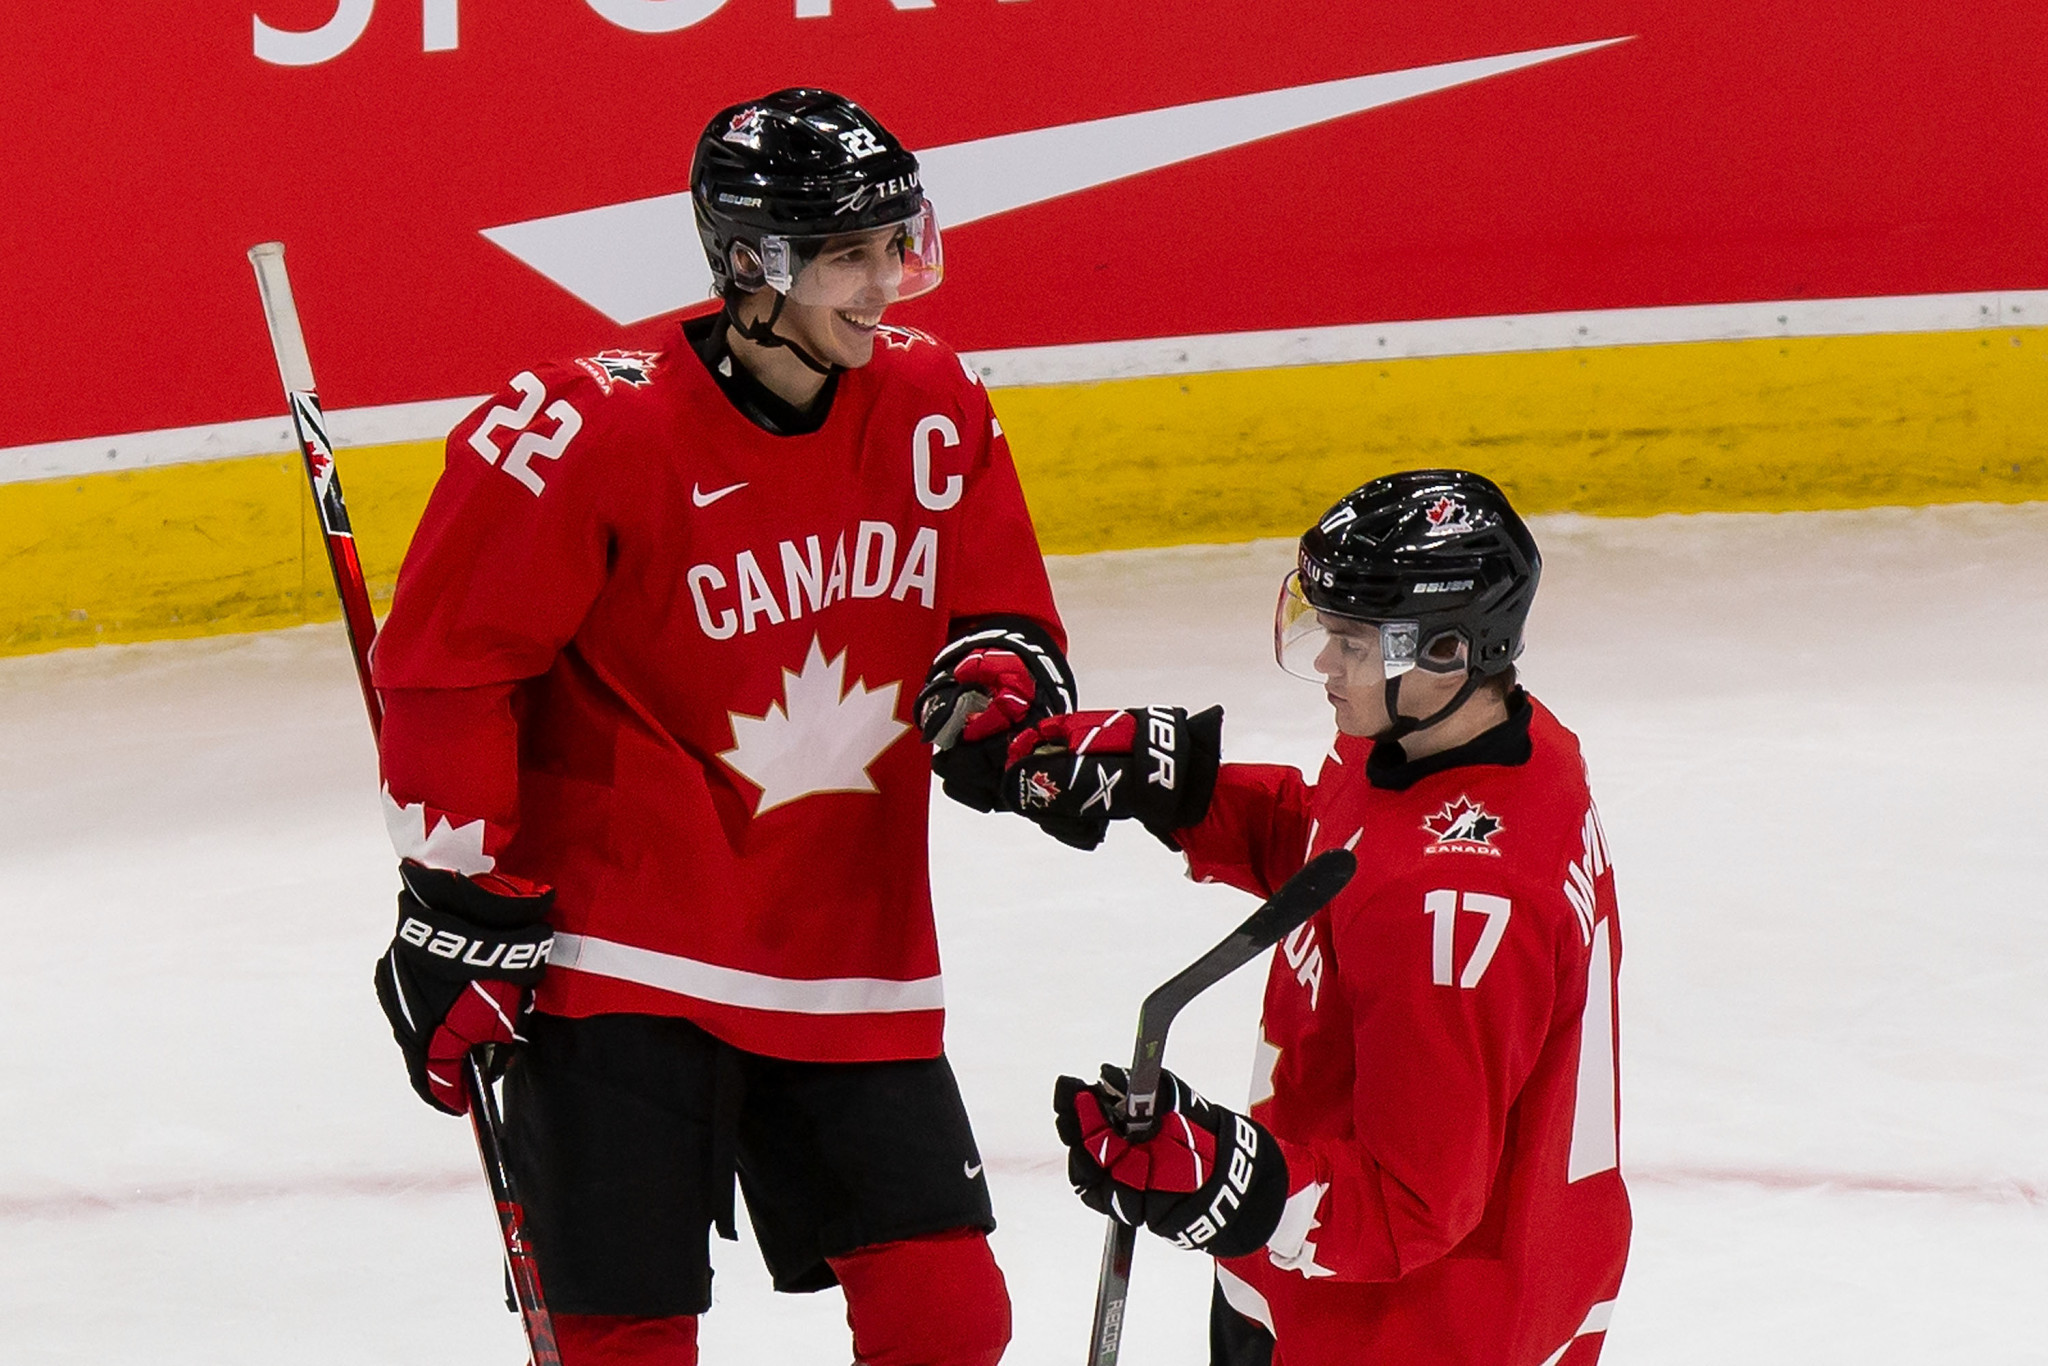 Canada reached the final of the 2021 IIHF World Junior Championship ©Getty Images